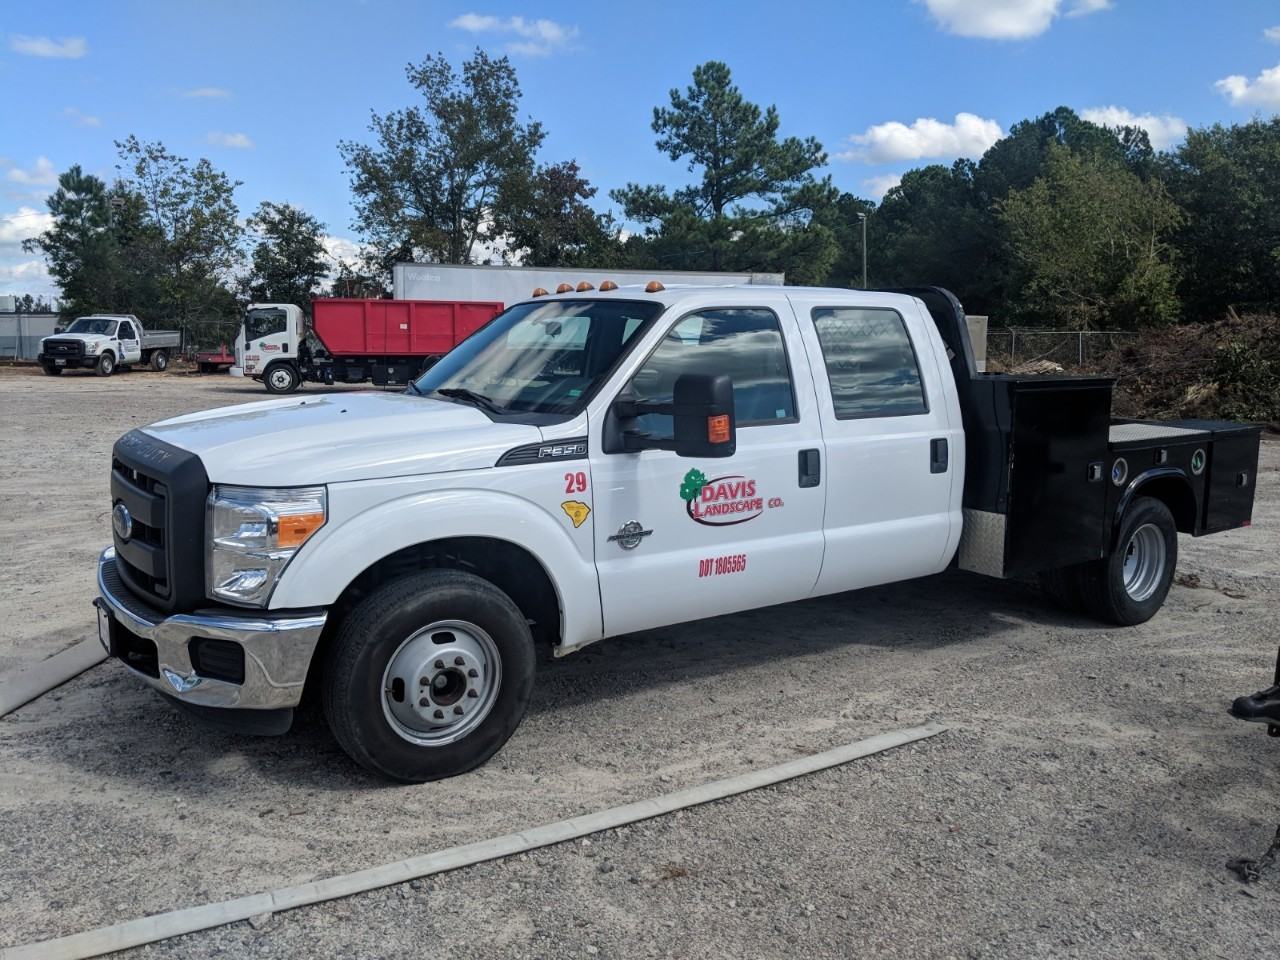 F350 Utility Truck Service Trucks For Sale 1980 Ford Crew Cab